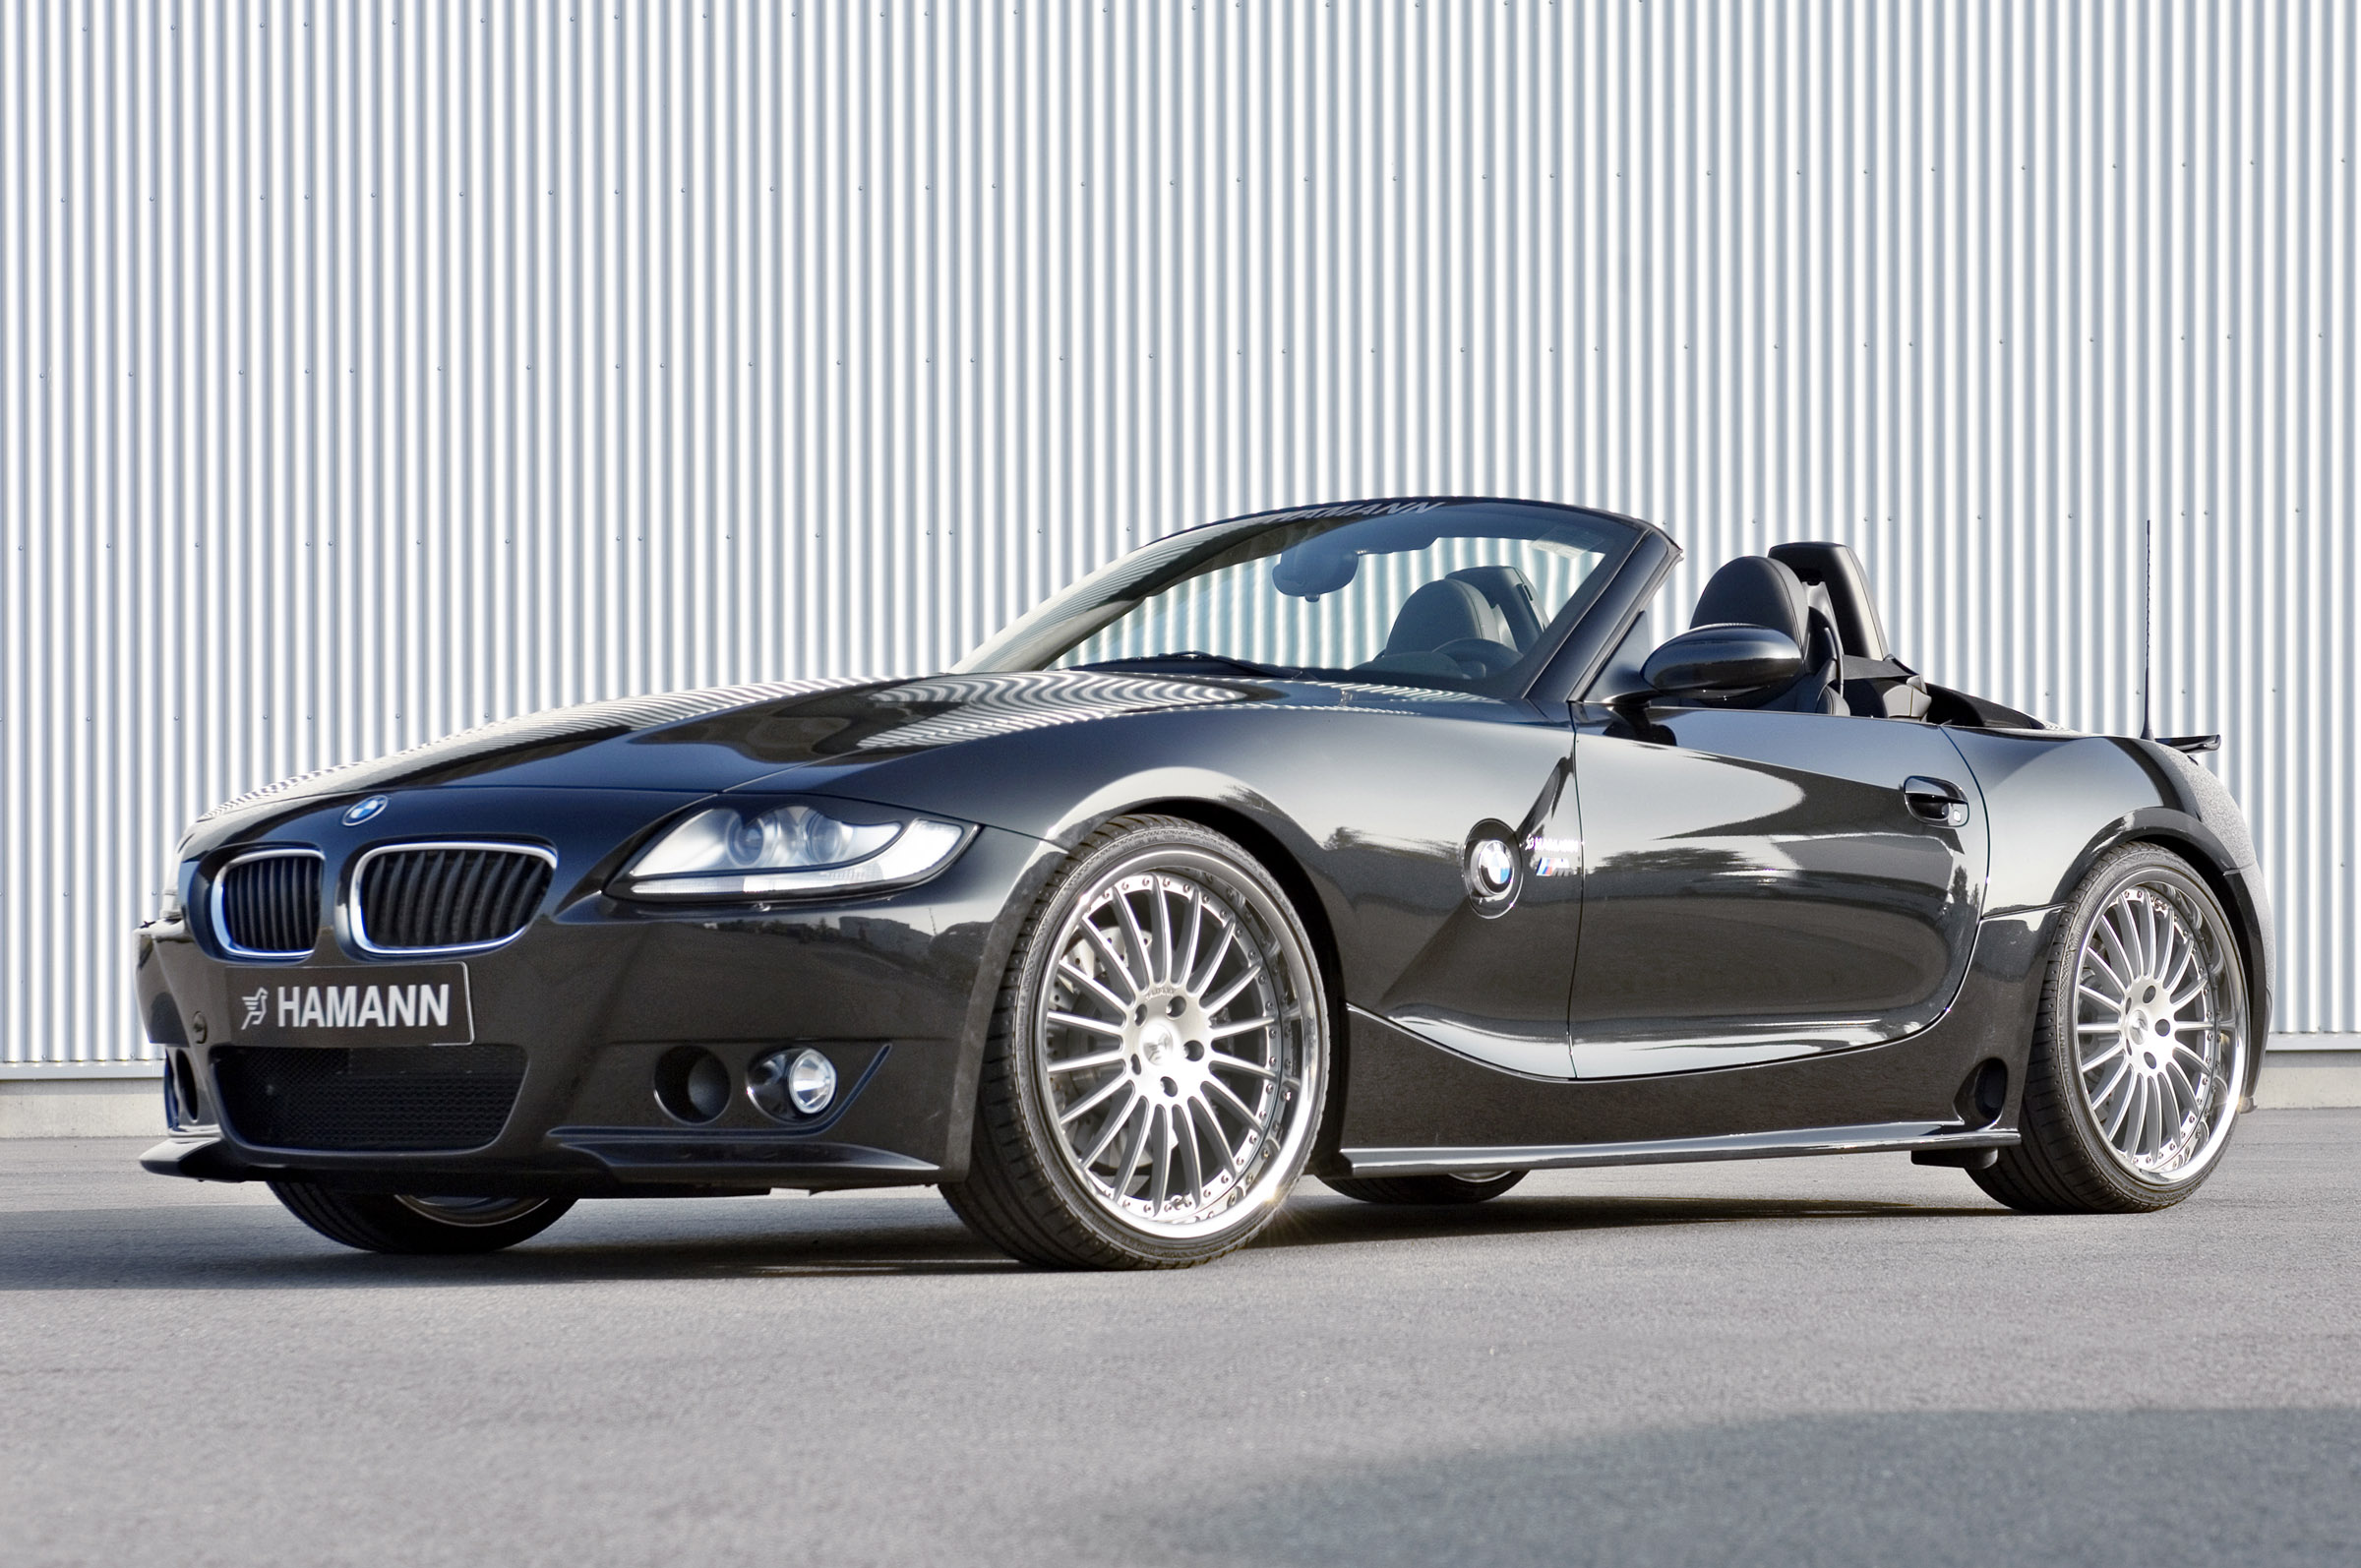 HAMANN BMW Z4 M Roadster - Picture 17117